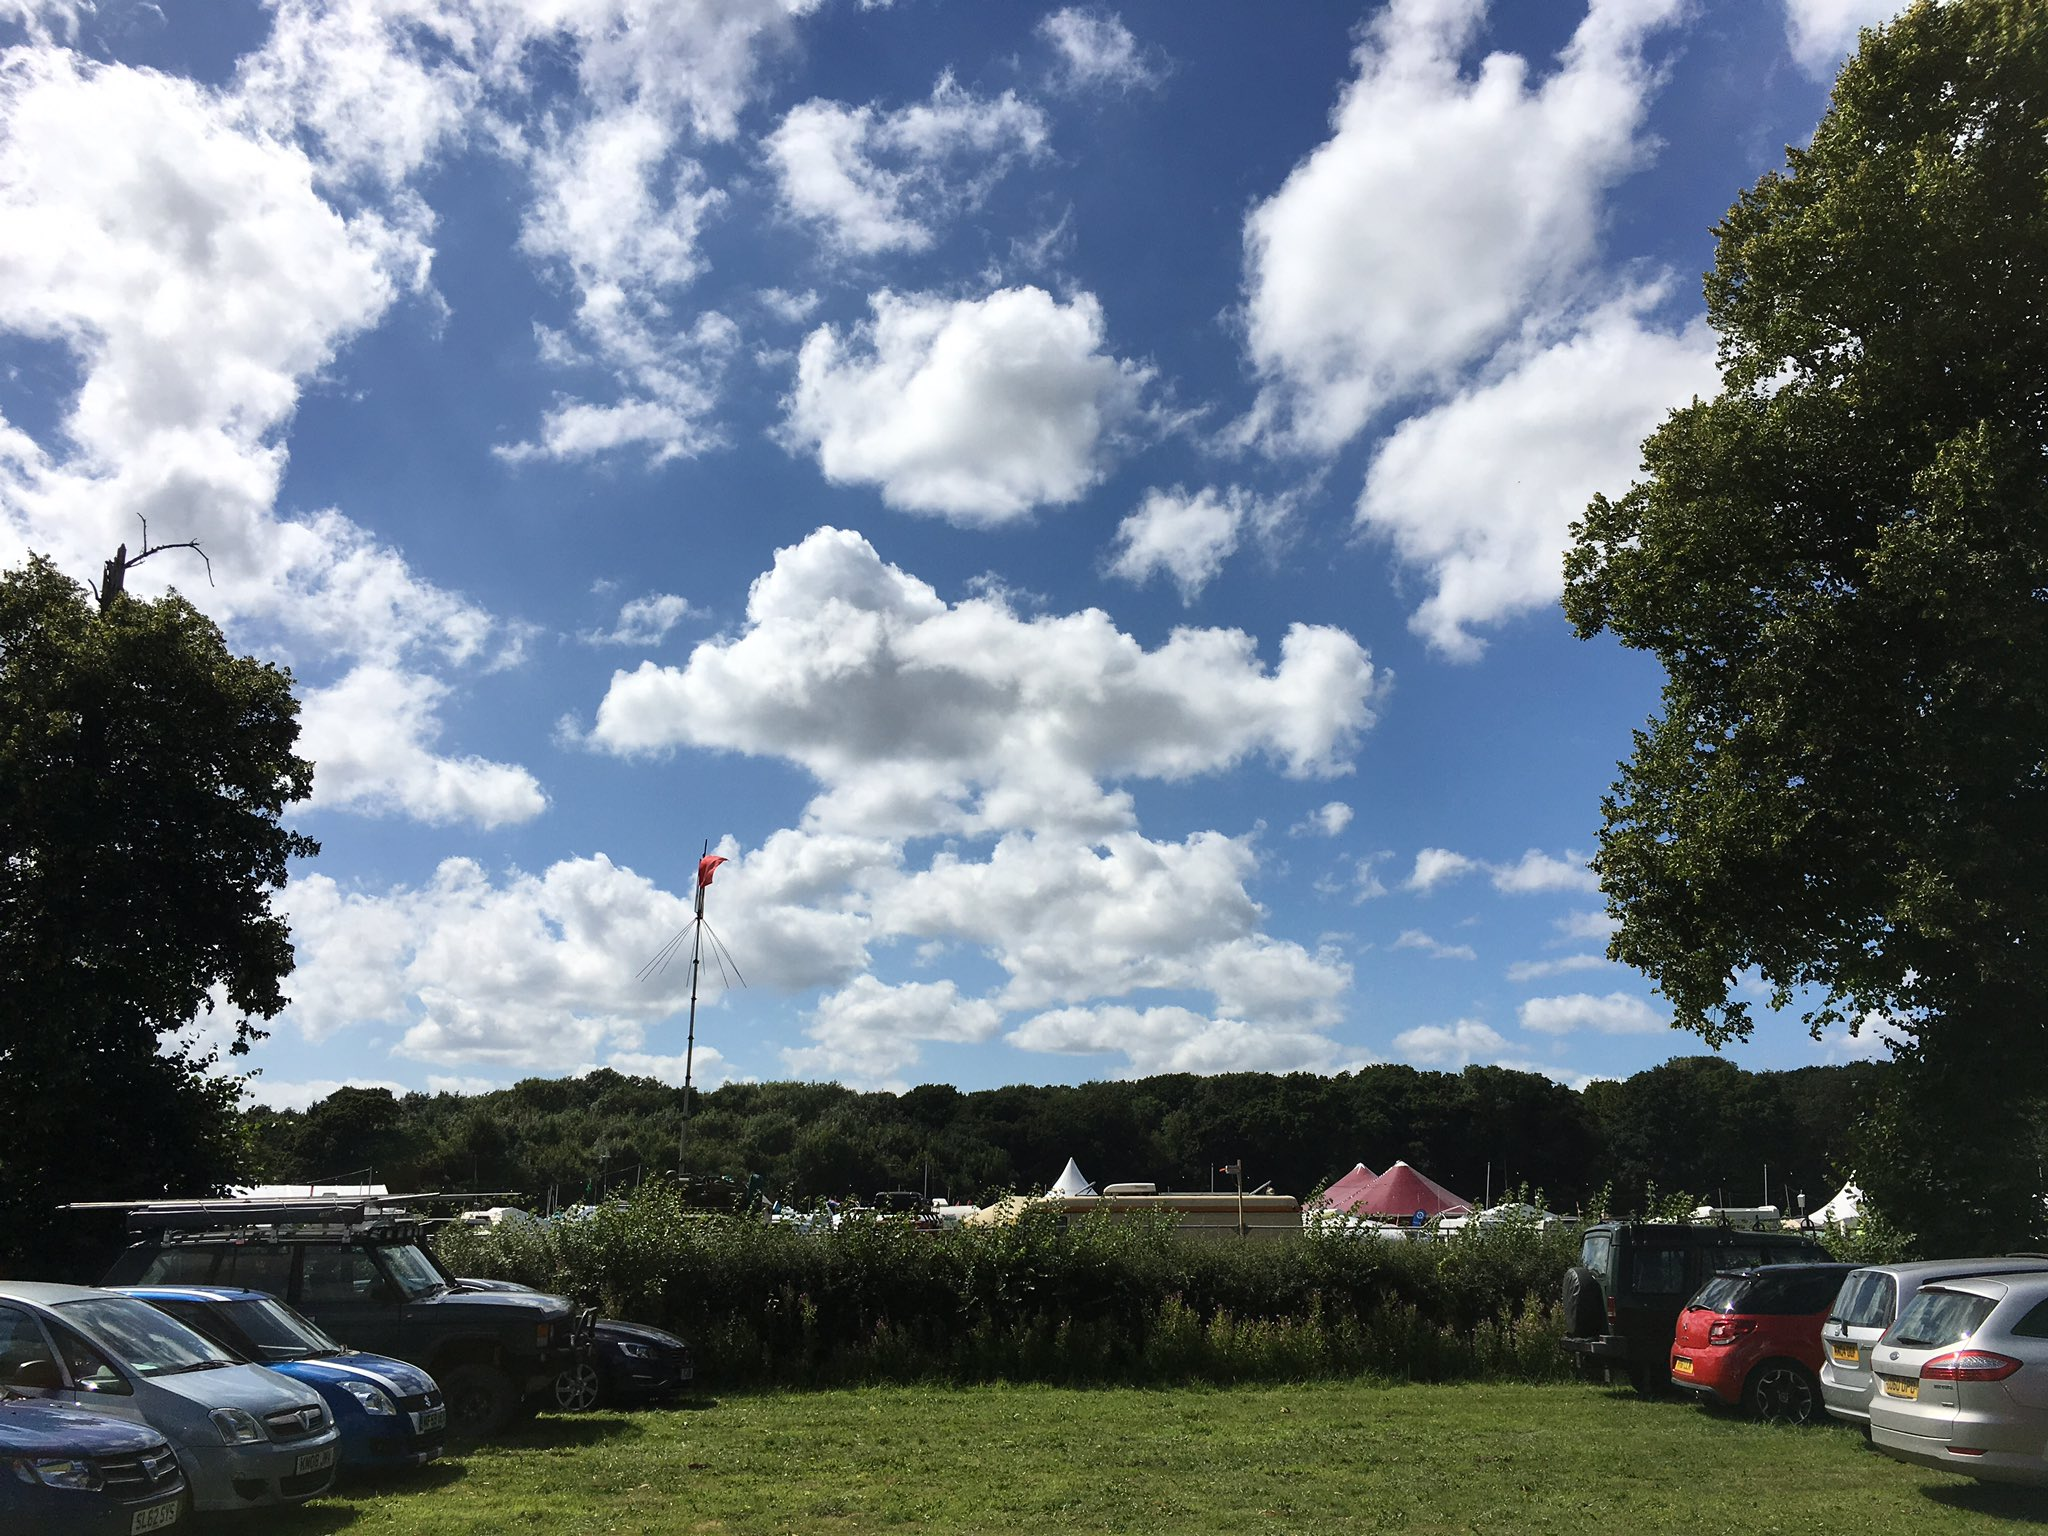 Leaving #emfcamp under glorious skies. See you in two years! https://t.co/9zwB7dUbTK